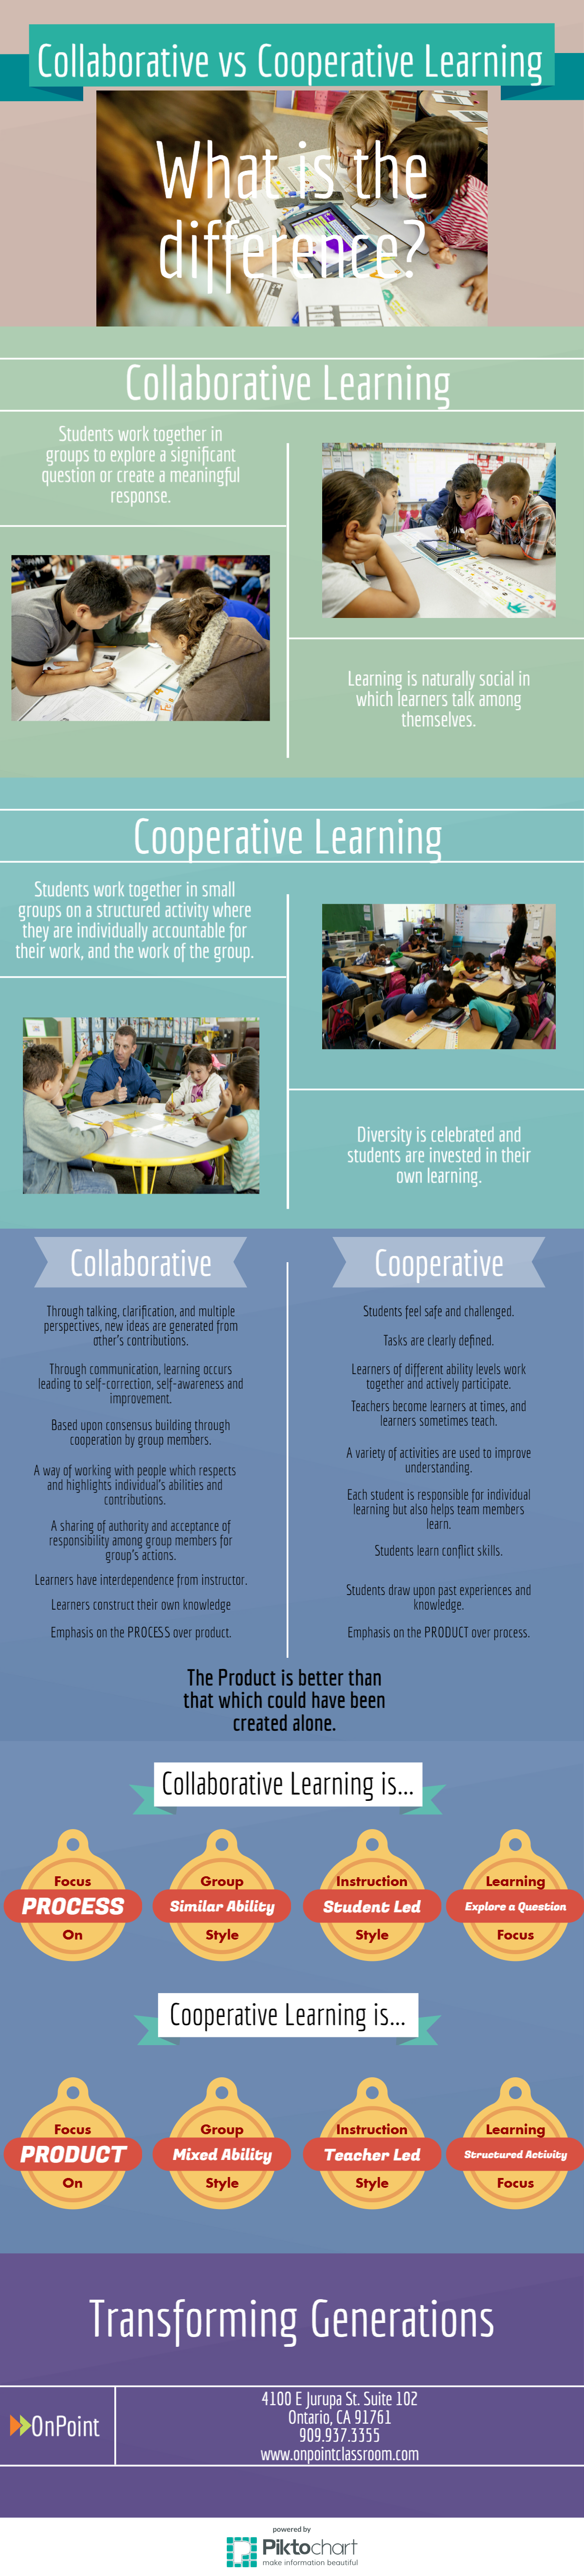 Collaborative Teaching Methods Pdf : What is the difference between collaborative and